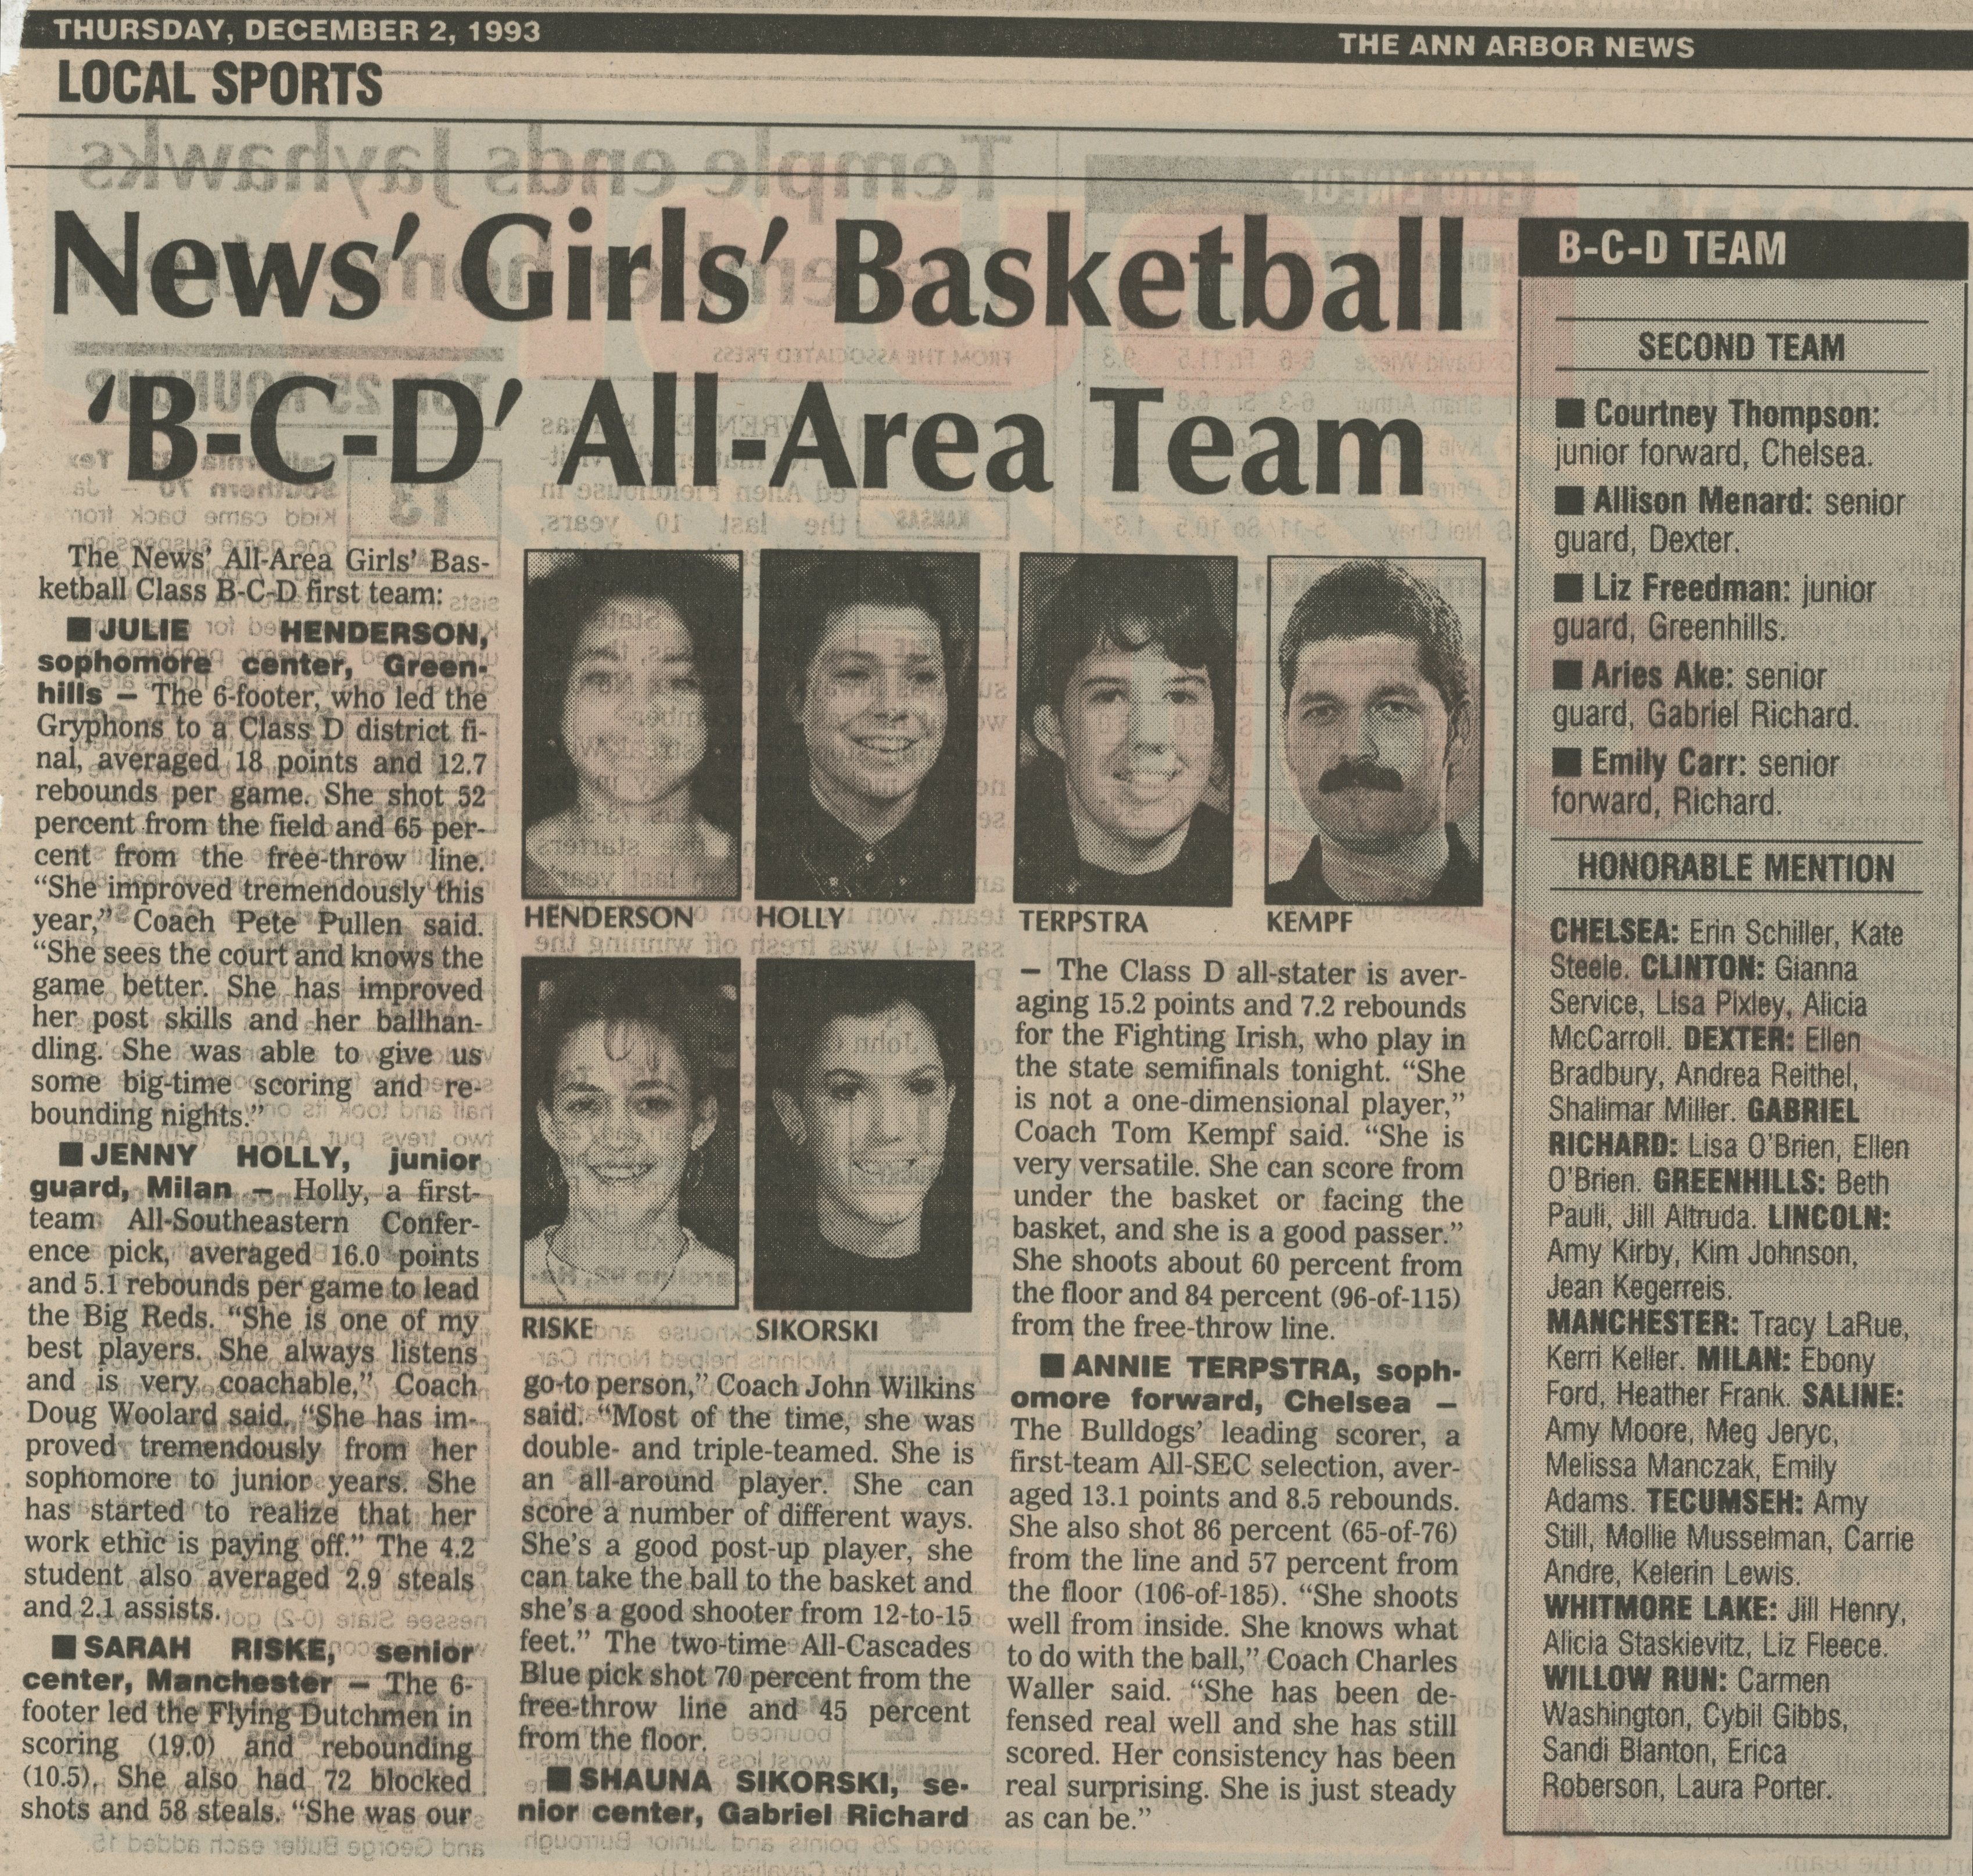 News' Girls' Basketball 'B-C-D' All-Area Team image